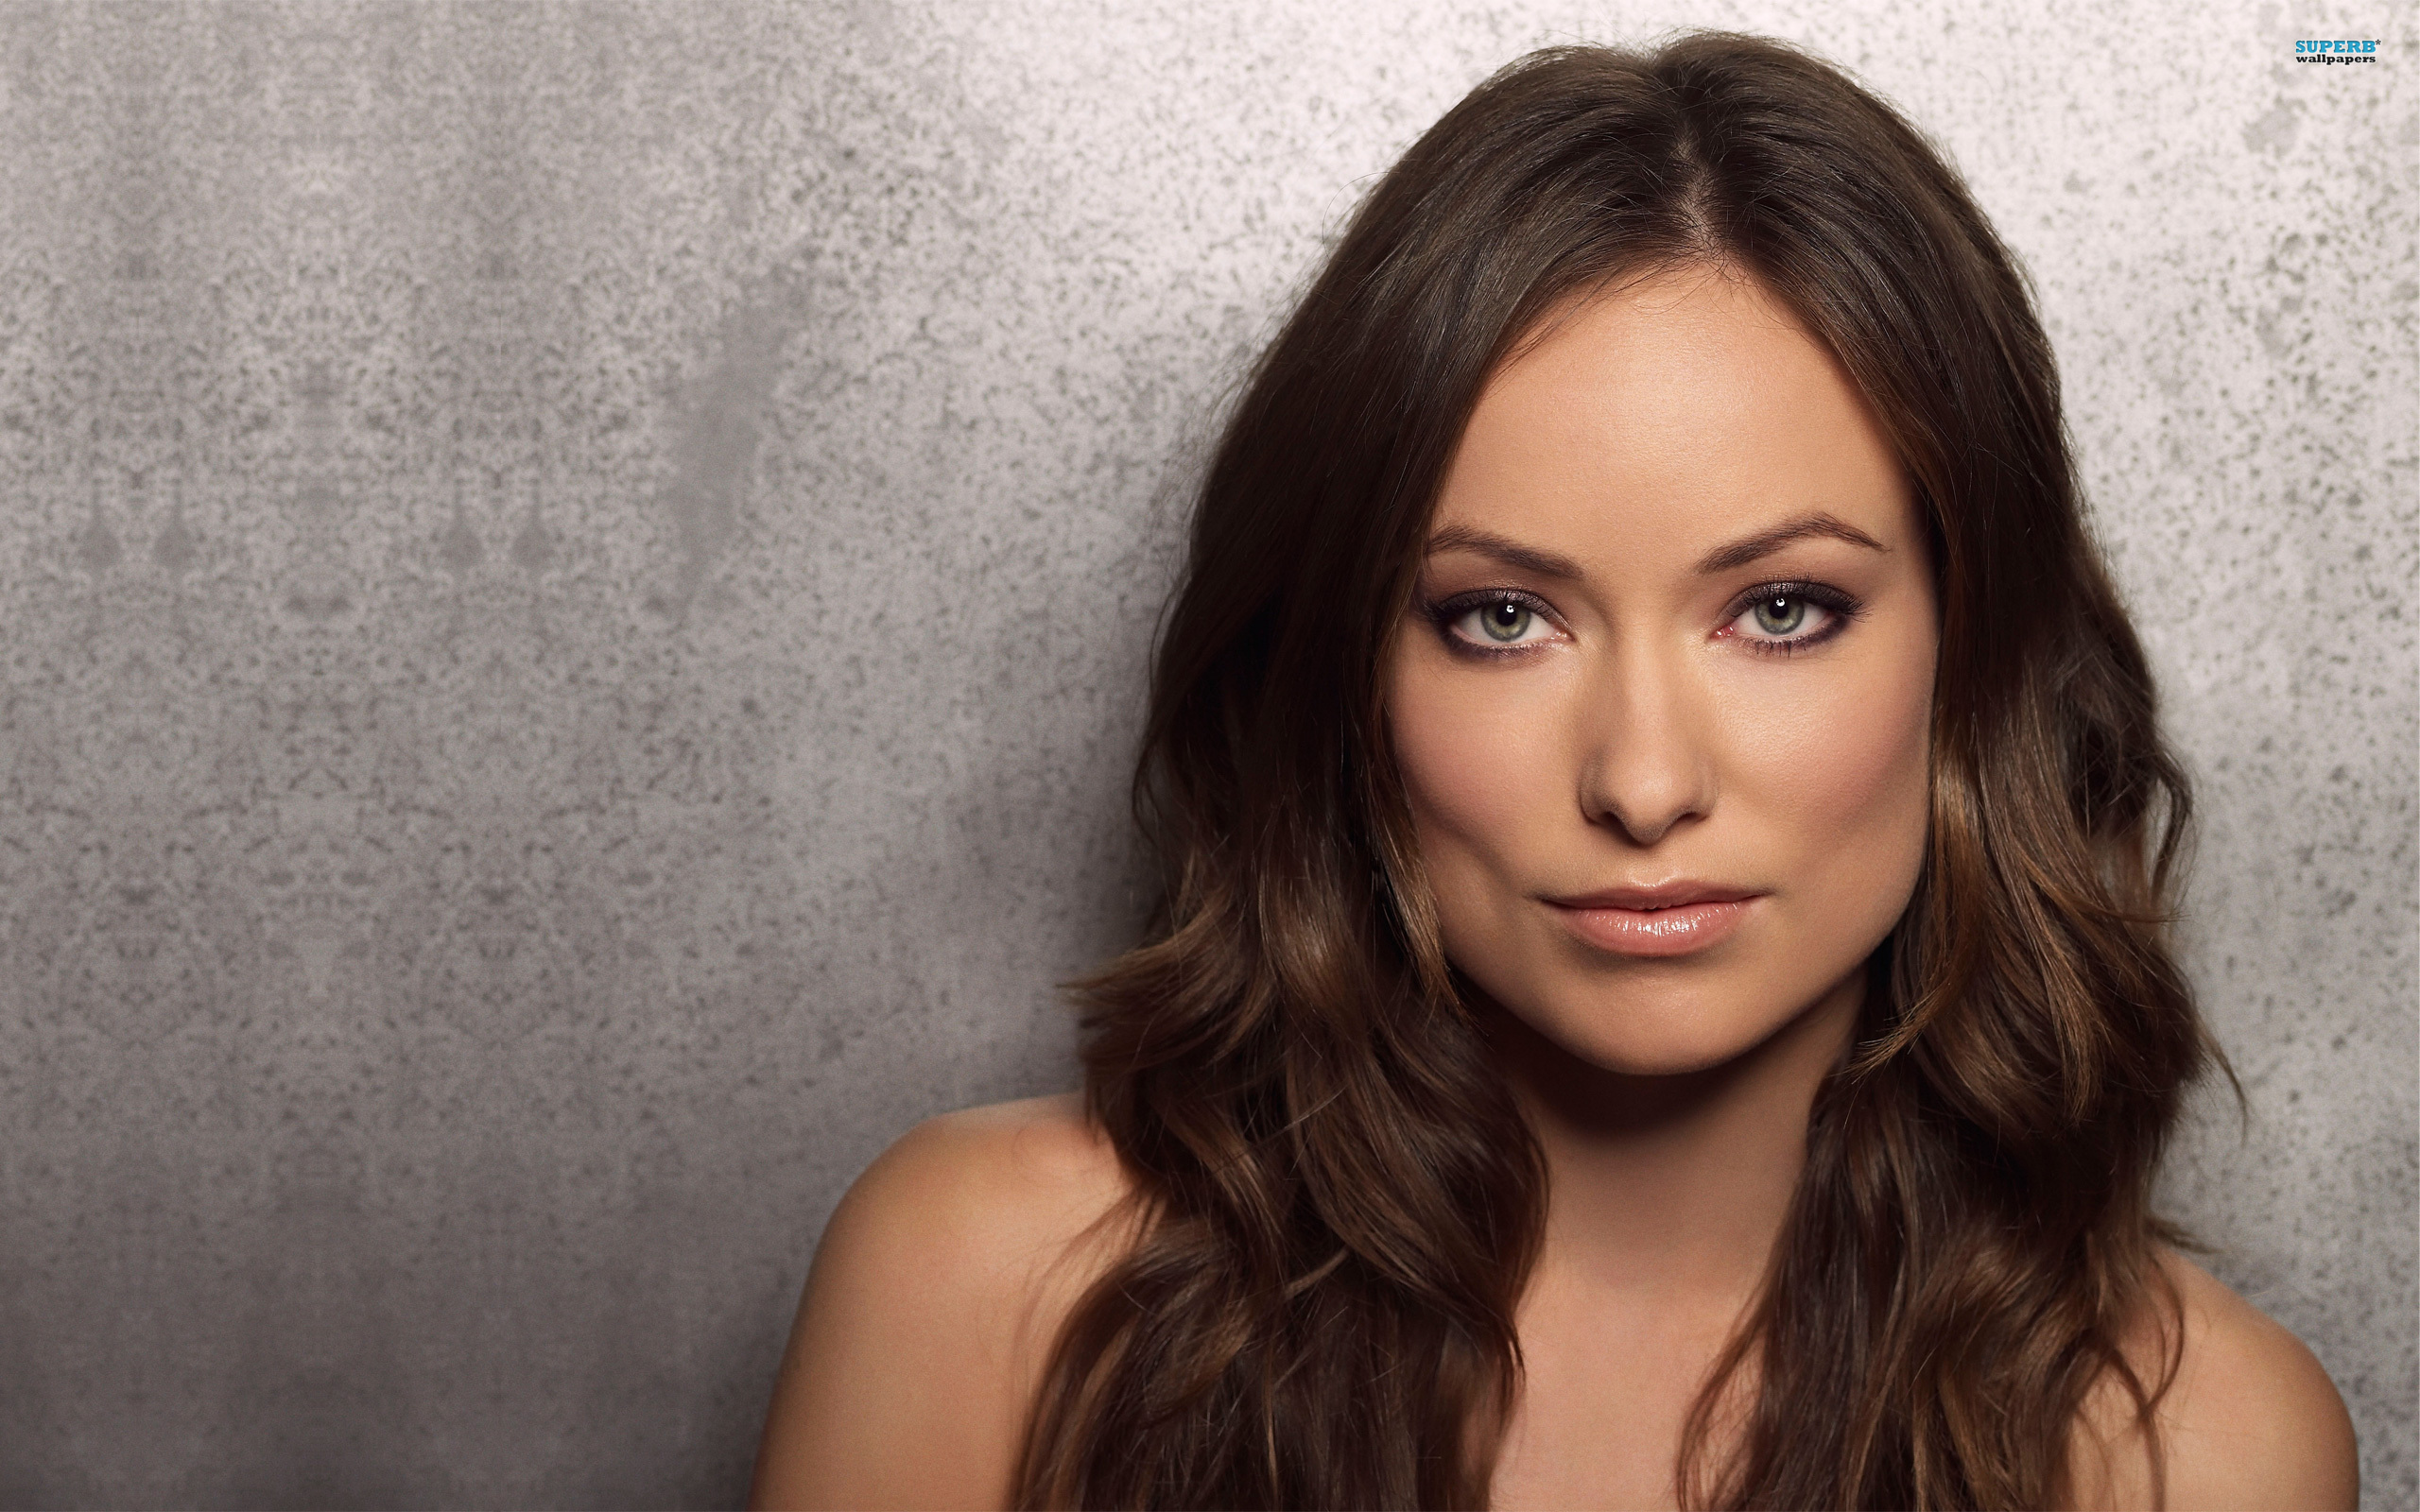 Olivia Wilde has long hair and is leaning on the wall